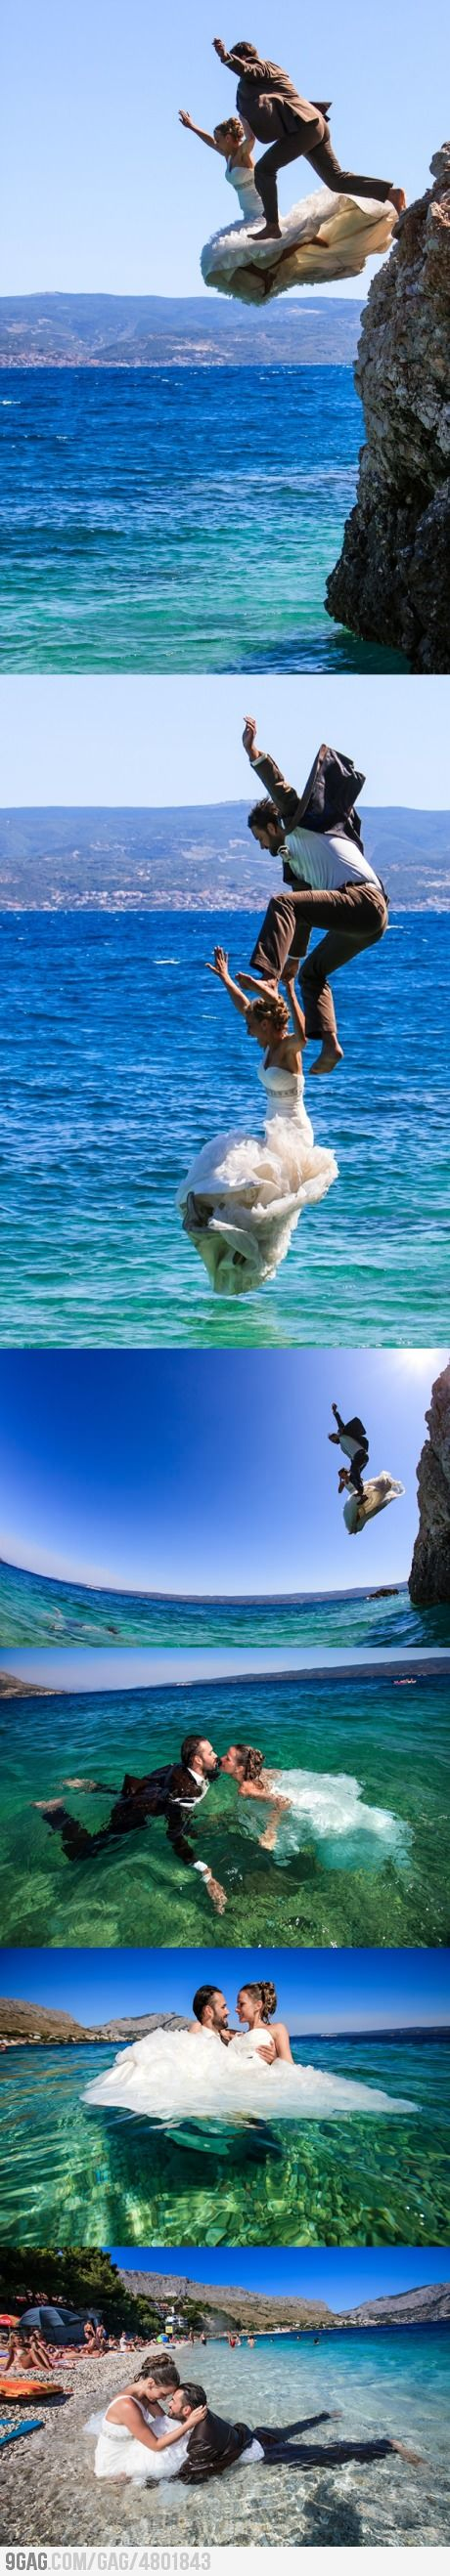 you only wear your wedding dress once so you might as well do something awesome in it -caribbean.html